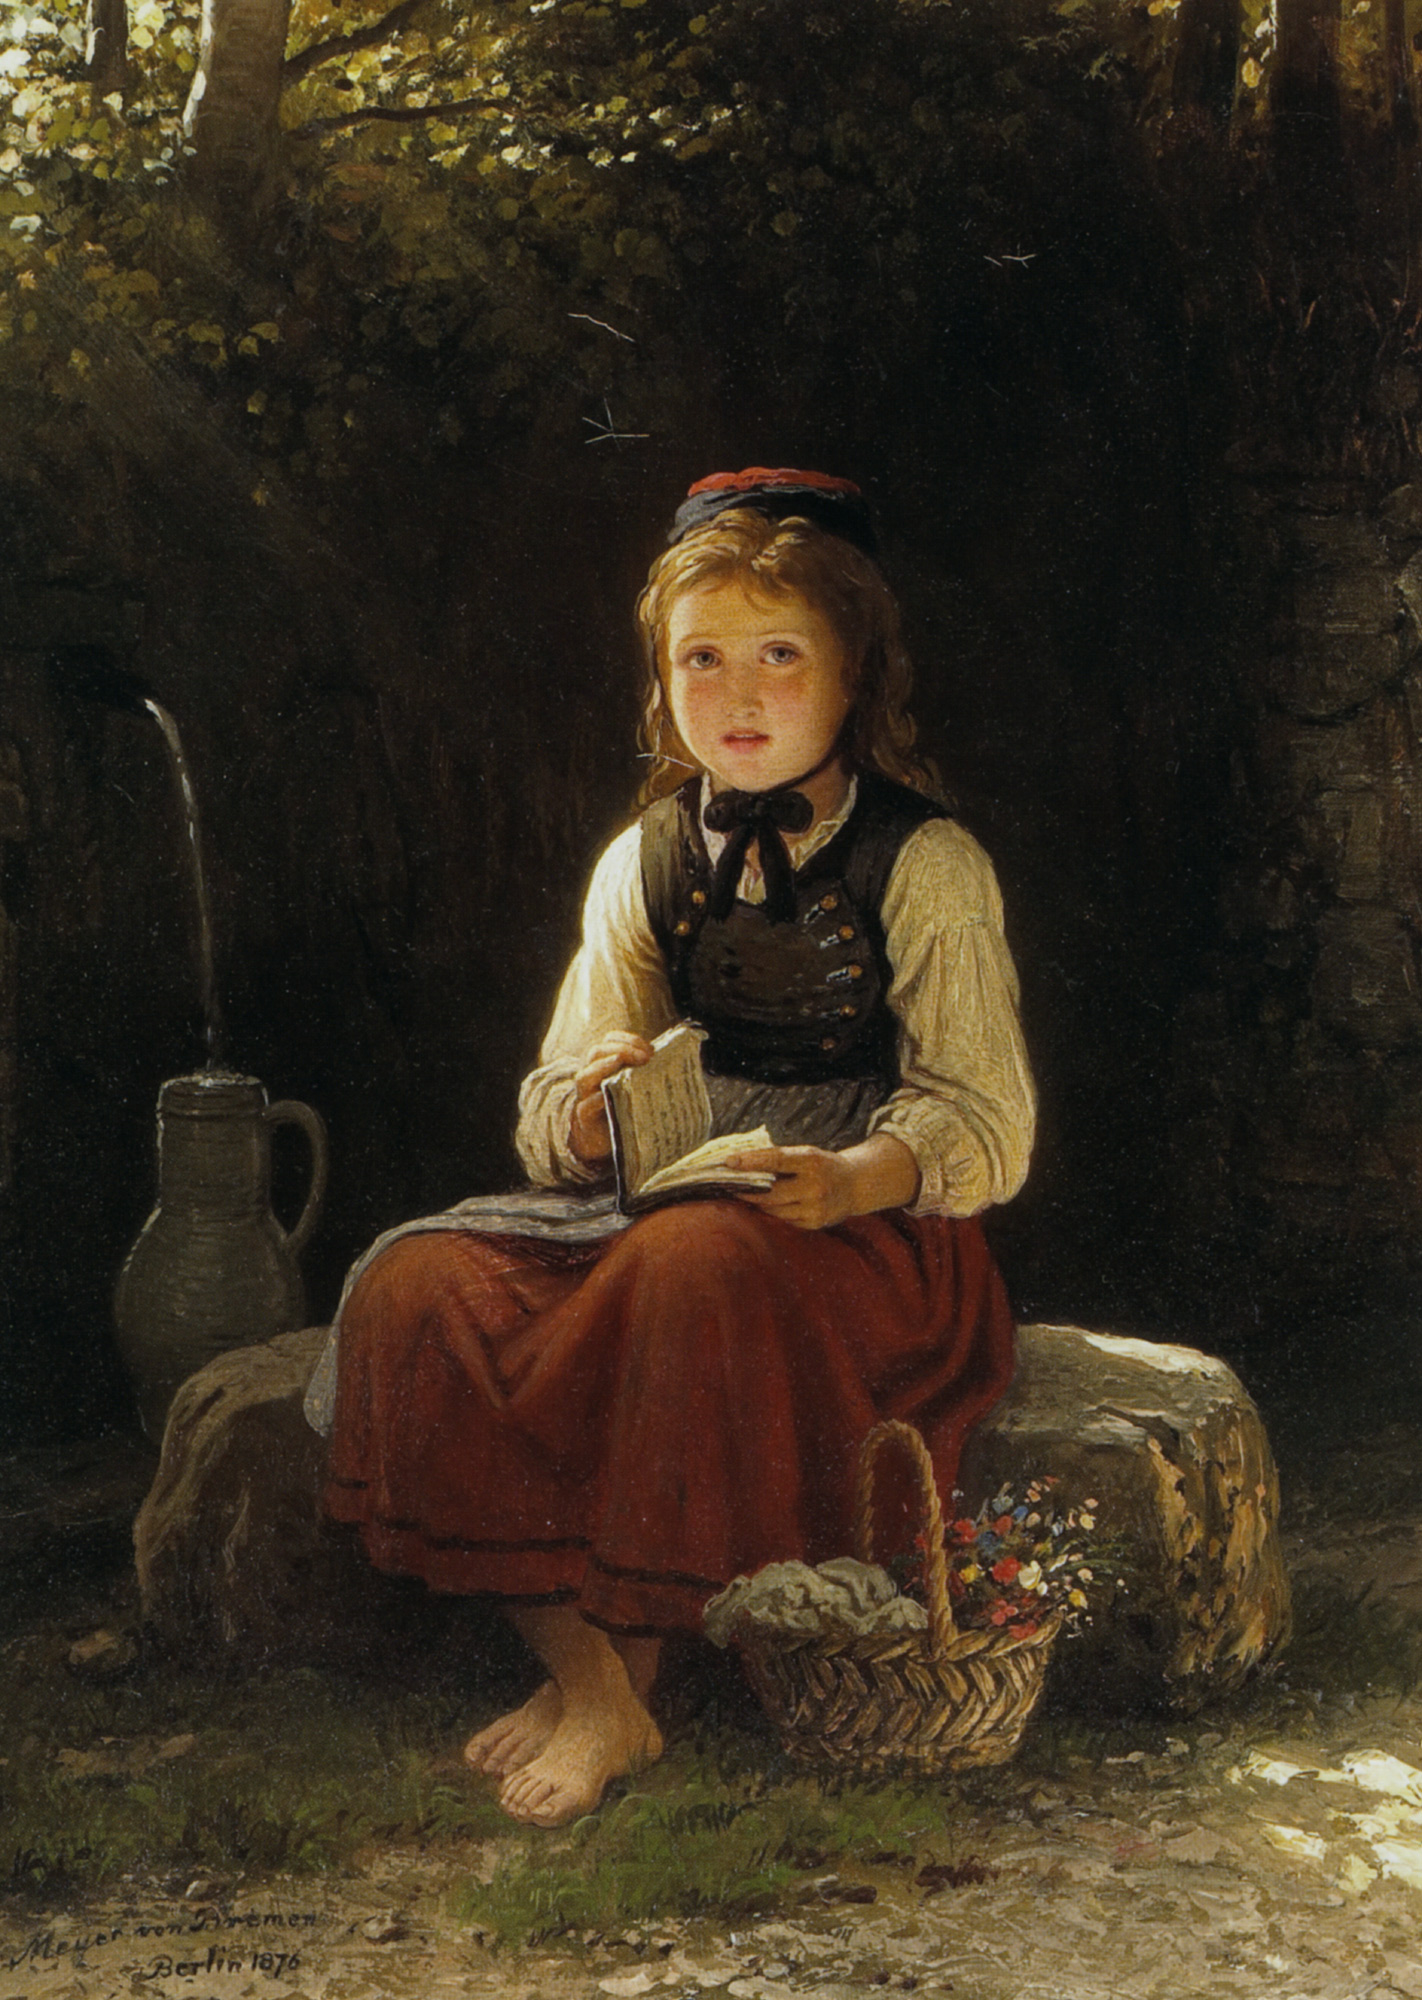 Young Girl at the Well :: Johann Georg Meyer von Bremen - Portraits of young girls in art and painting ôîòî